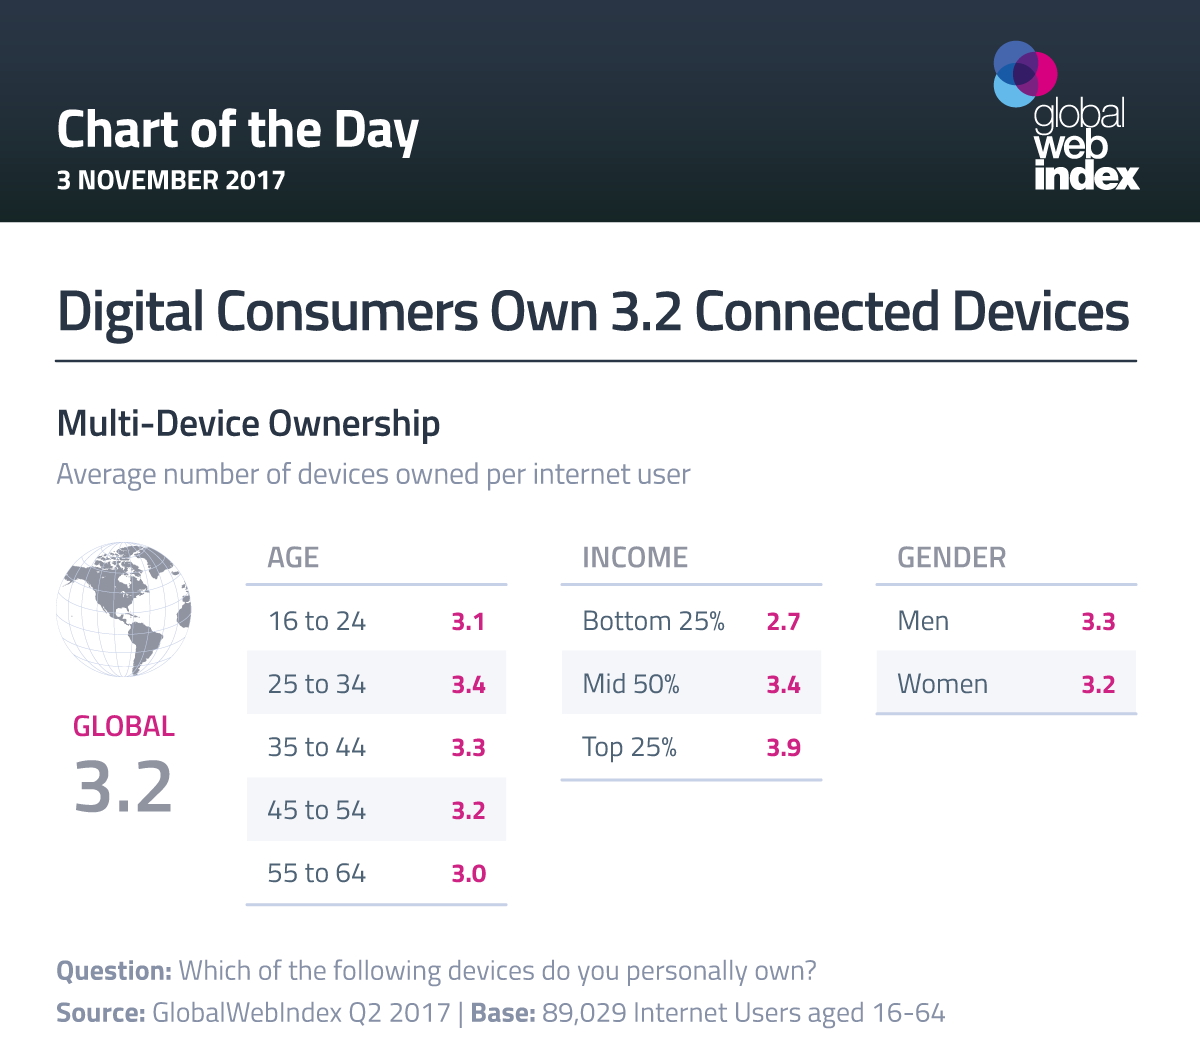 Digital Consumers Own 3.2 Connected Devices